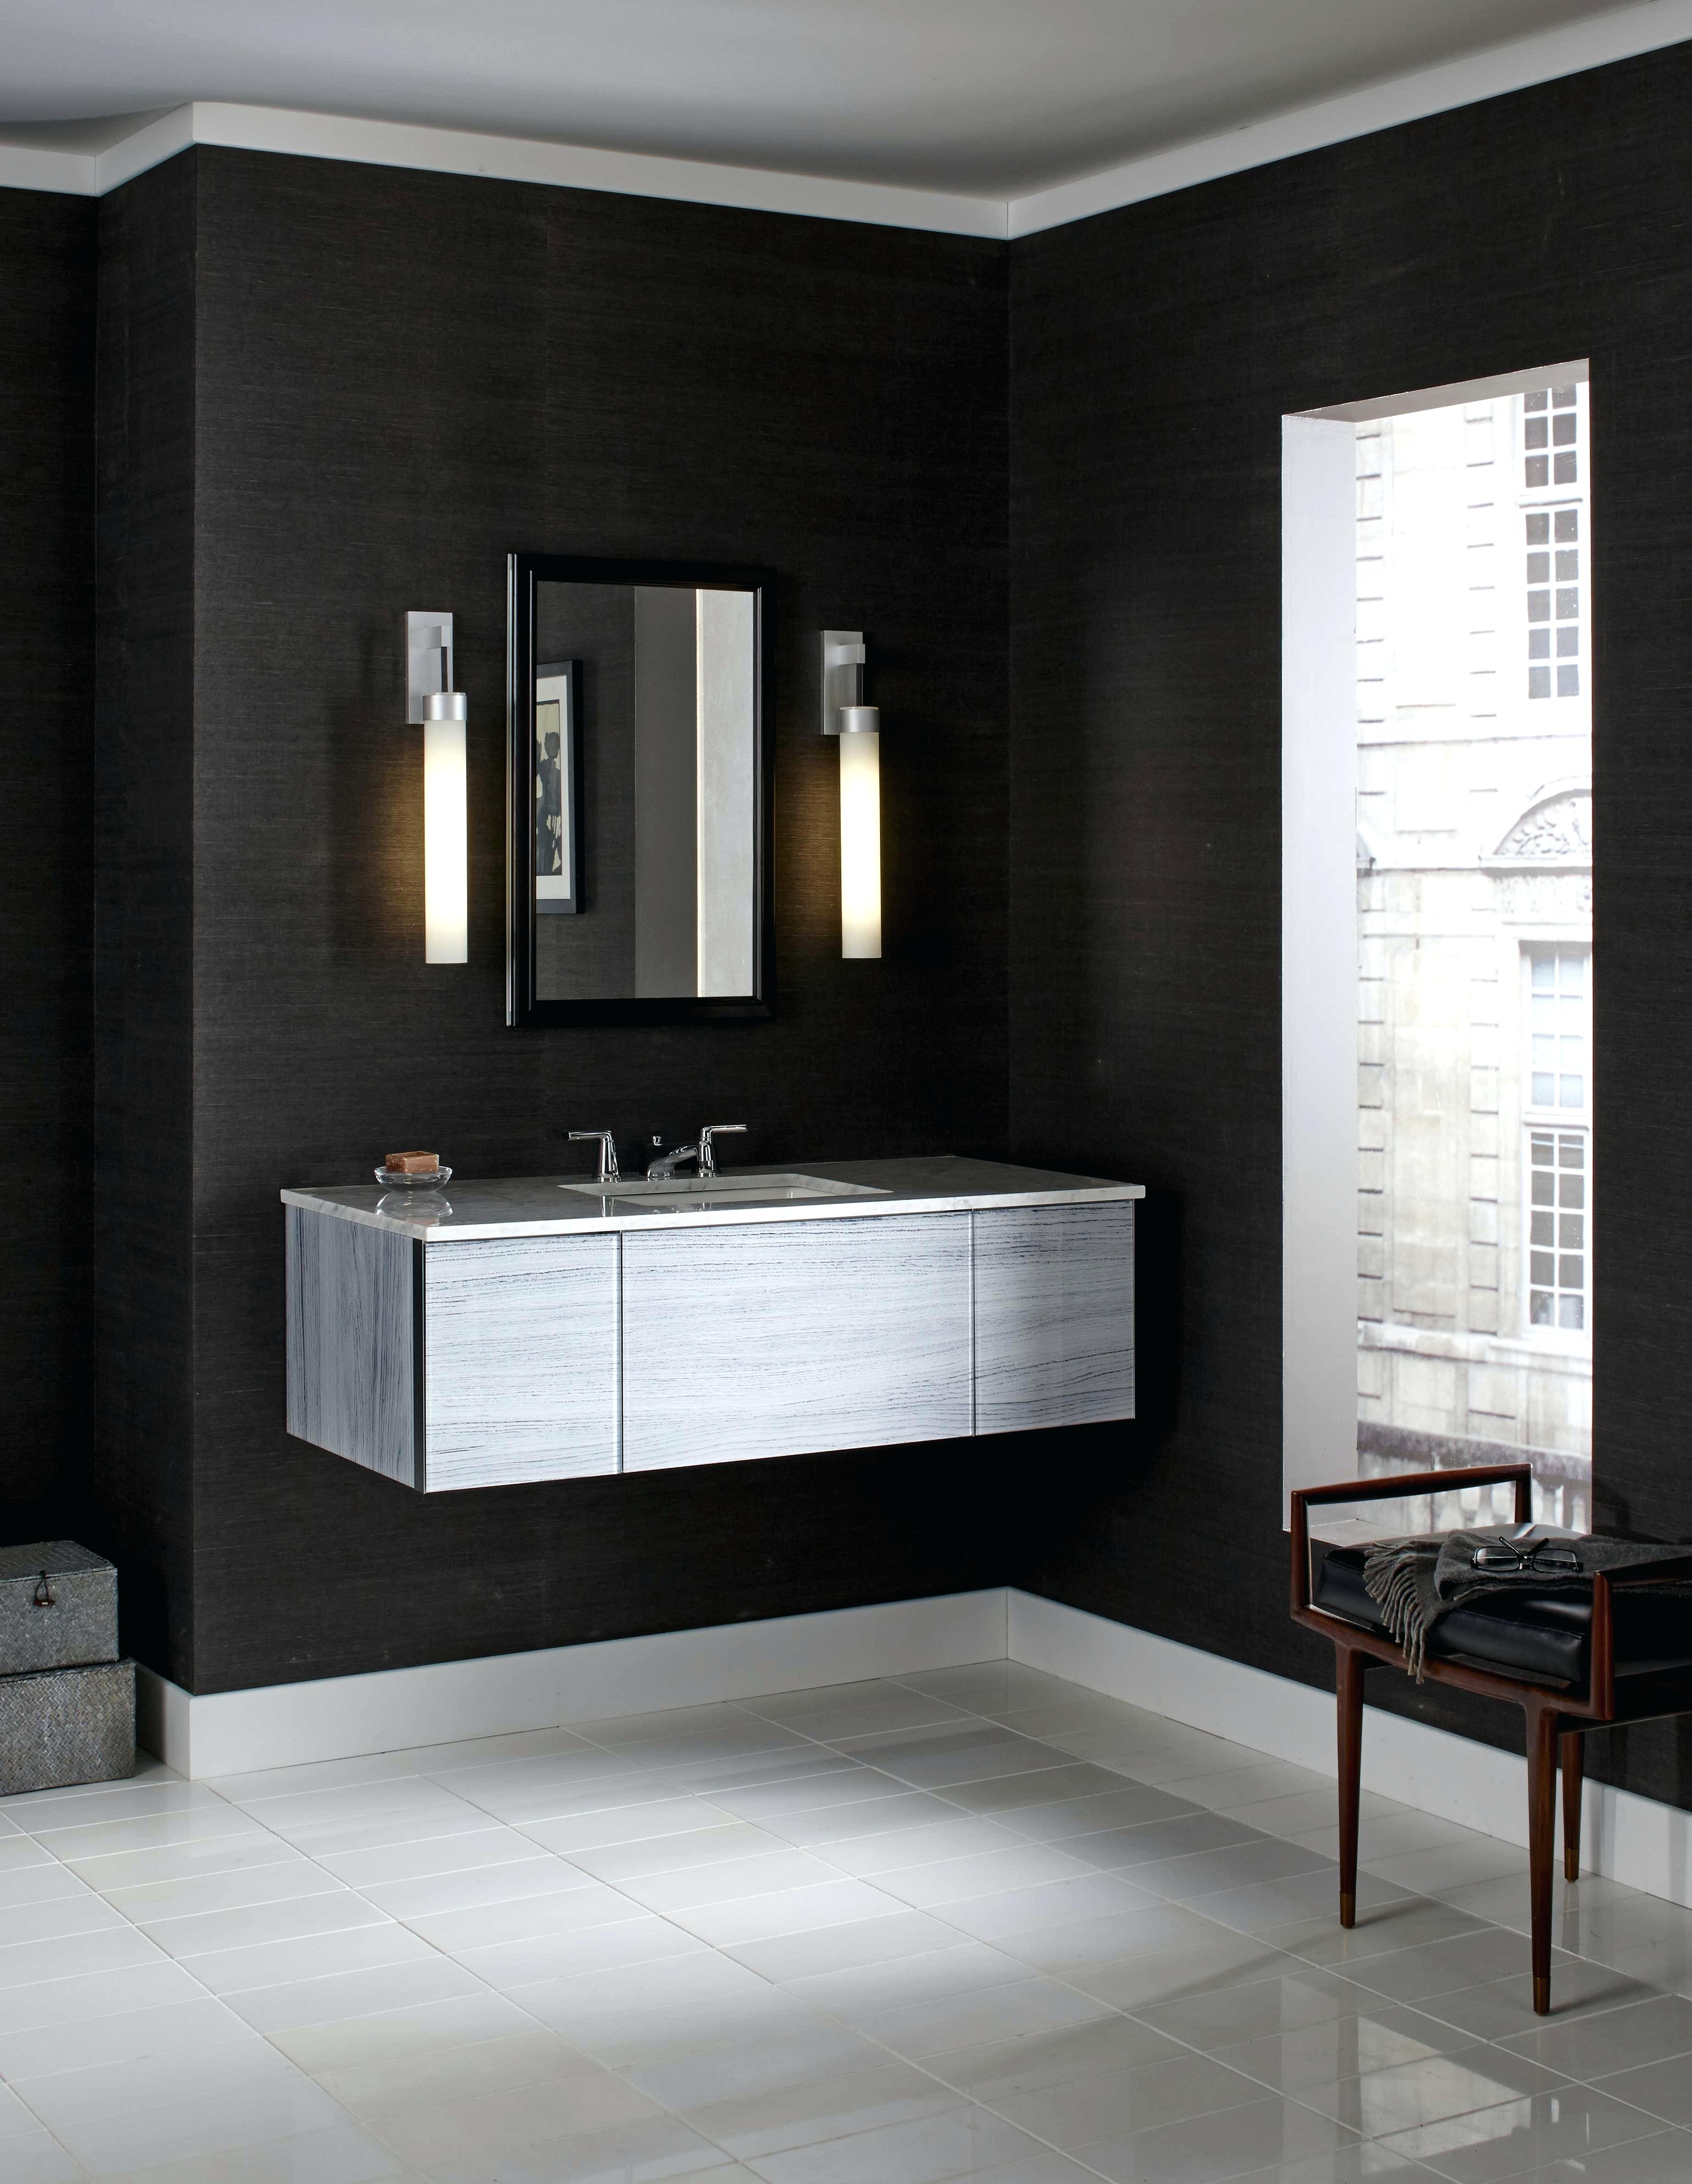 awesome bathroom vanity height décor-Beautiful Bathroom Vanity Height Design